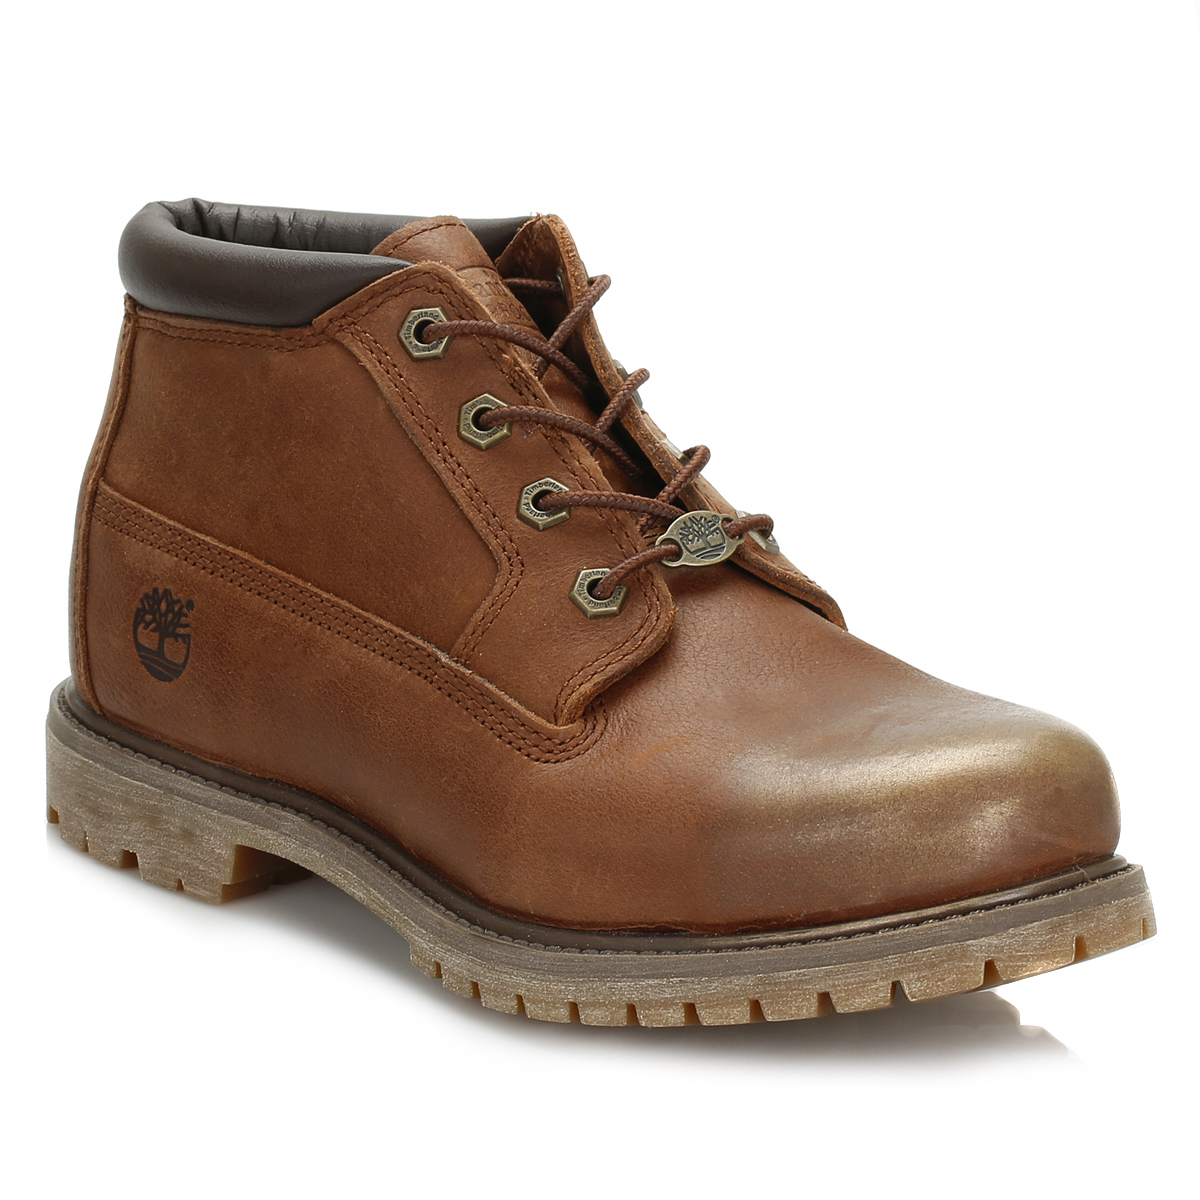 Fantastic This Tall Version Of The Traditional Timberland Boot Is All You Need In A Winter Boot It Features The Classic Lace Up Styling As Well As The Timberland Signature Above The Heel The Upper Is Premium Full Grain Leather In The Classic Wheat